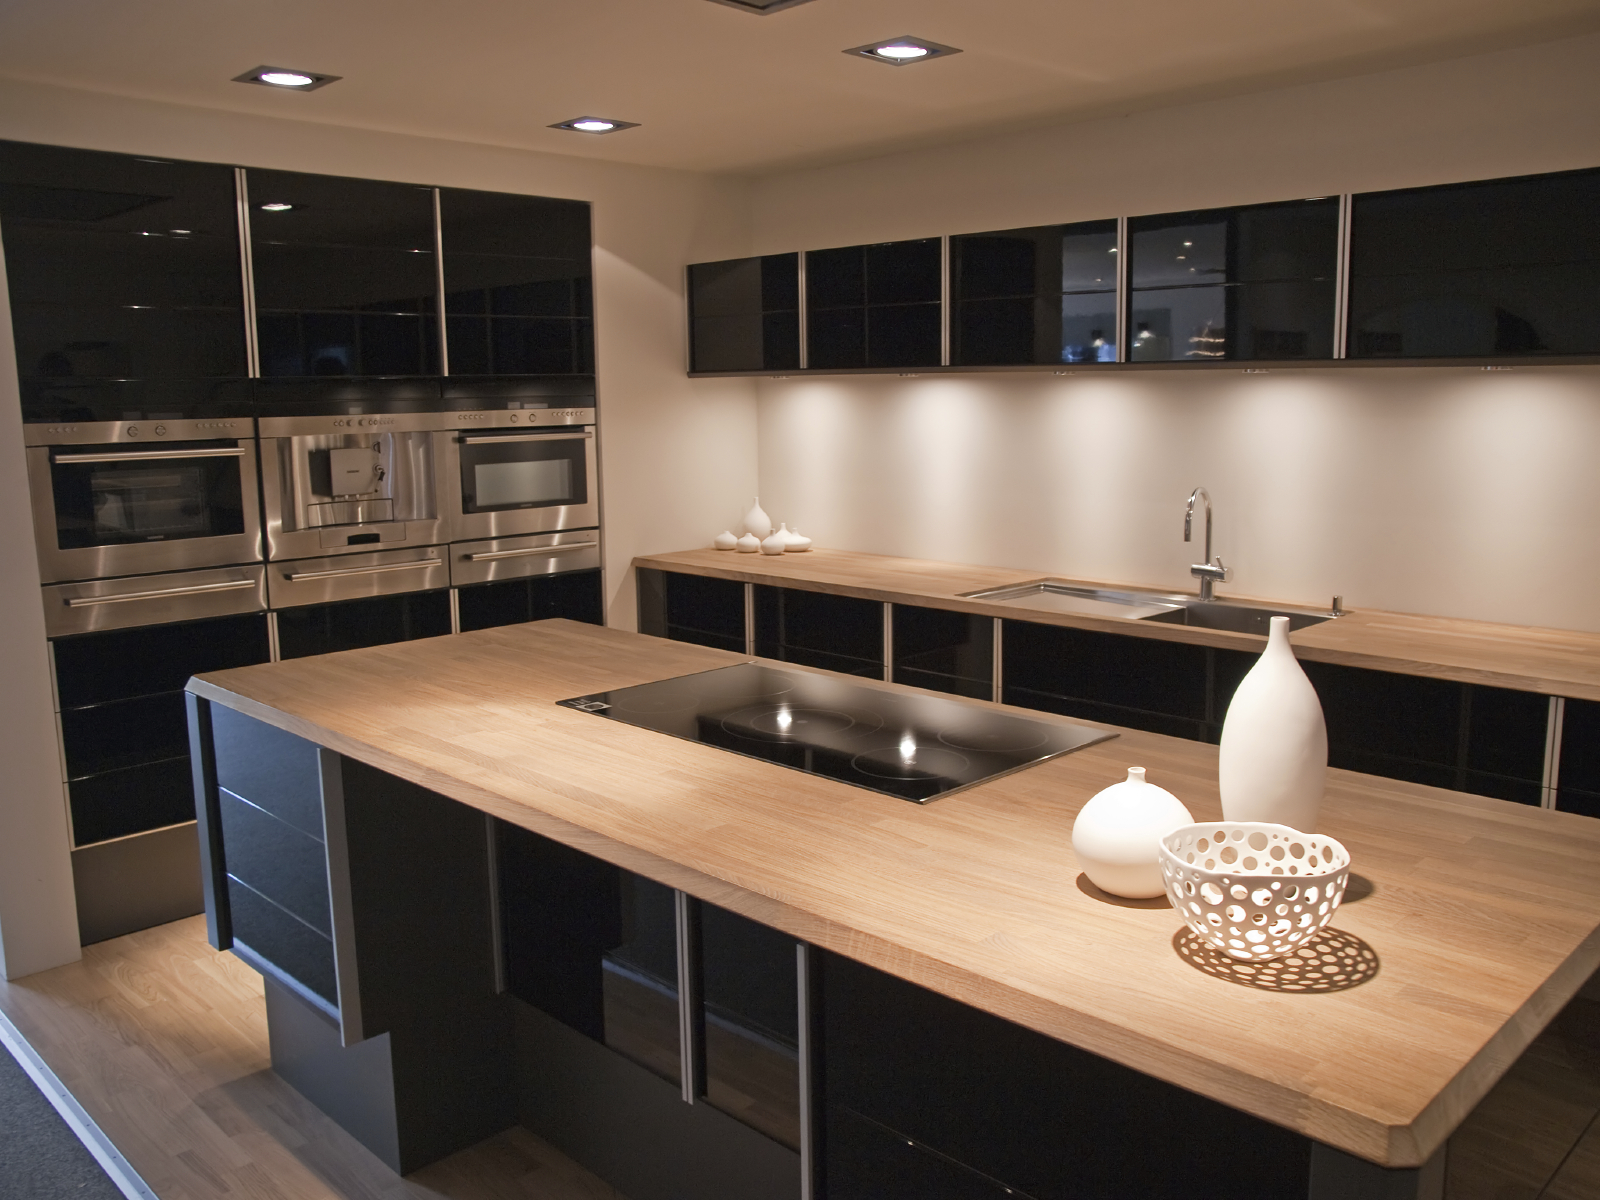 Kitchen Remodeler – LA Kitchen Remodeling Contractor Los Angeles